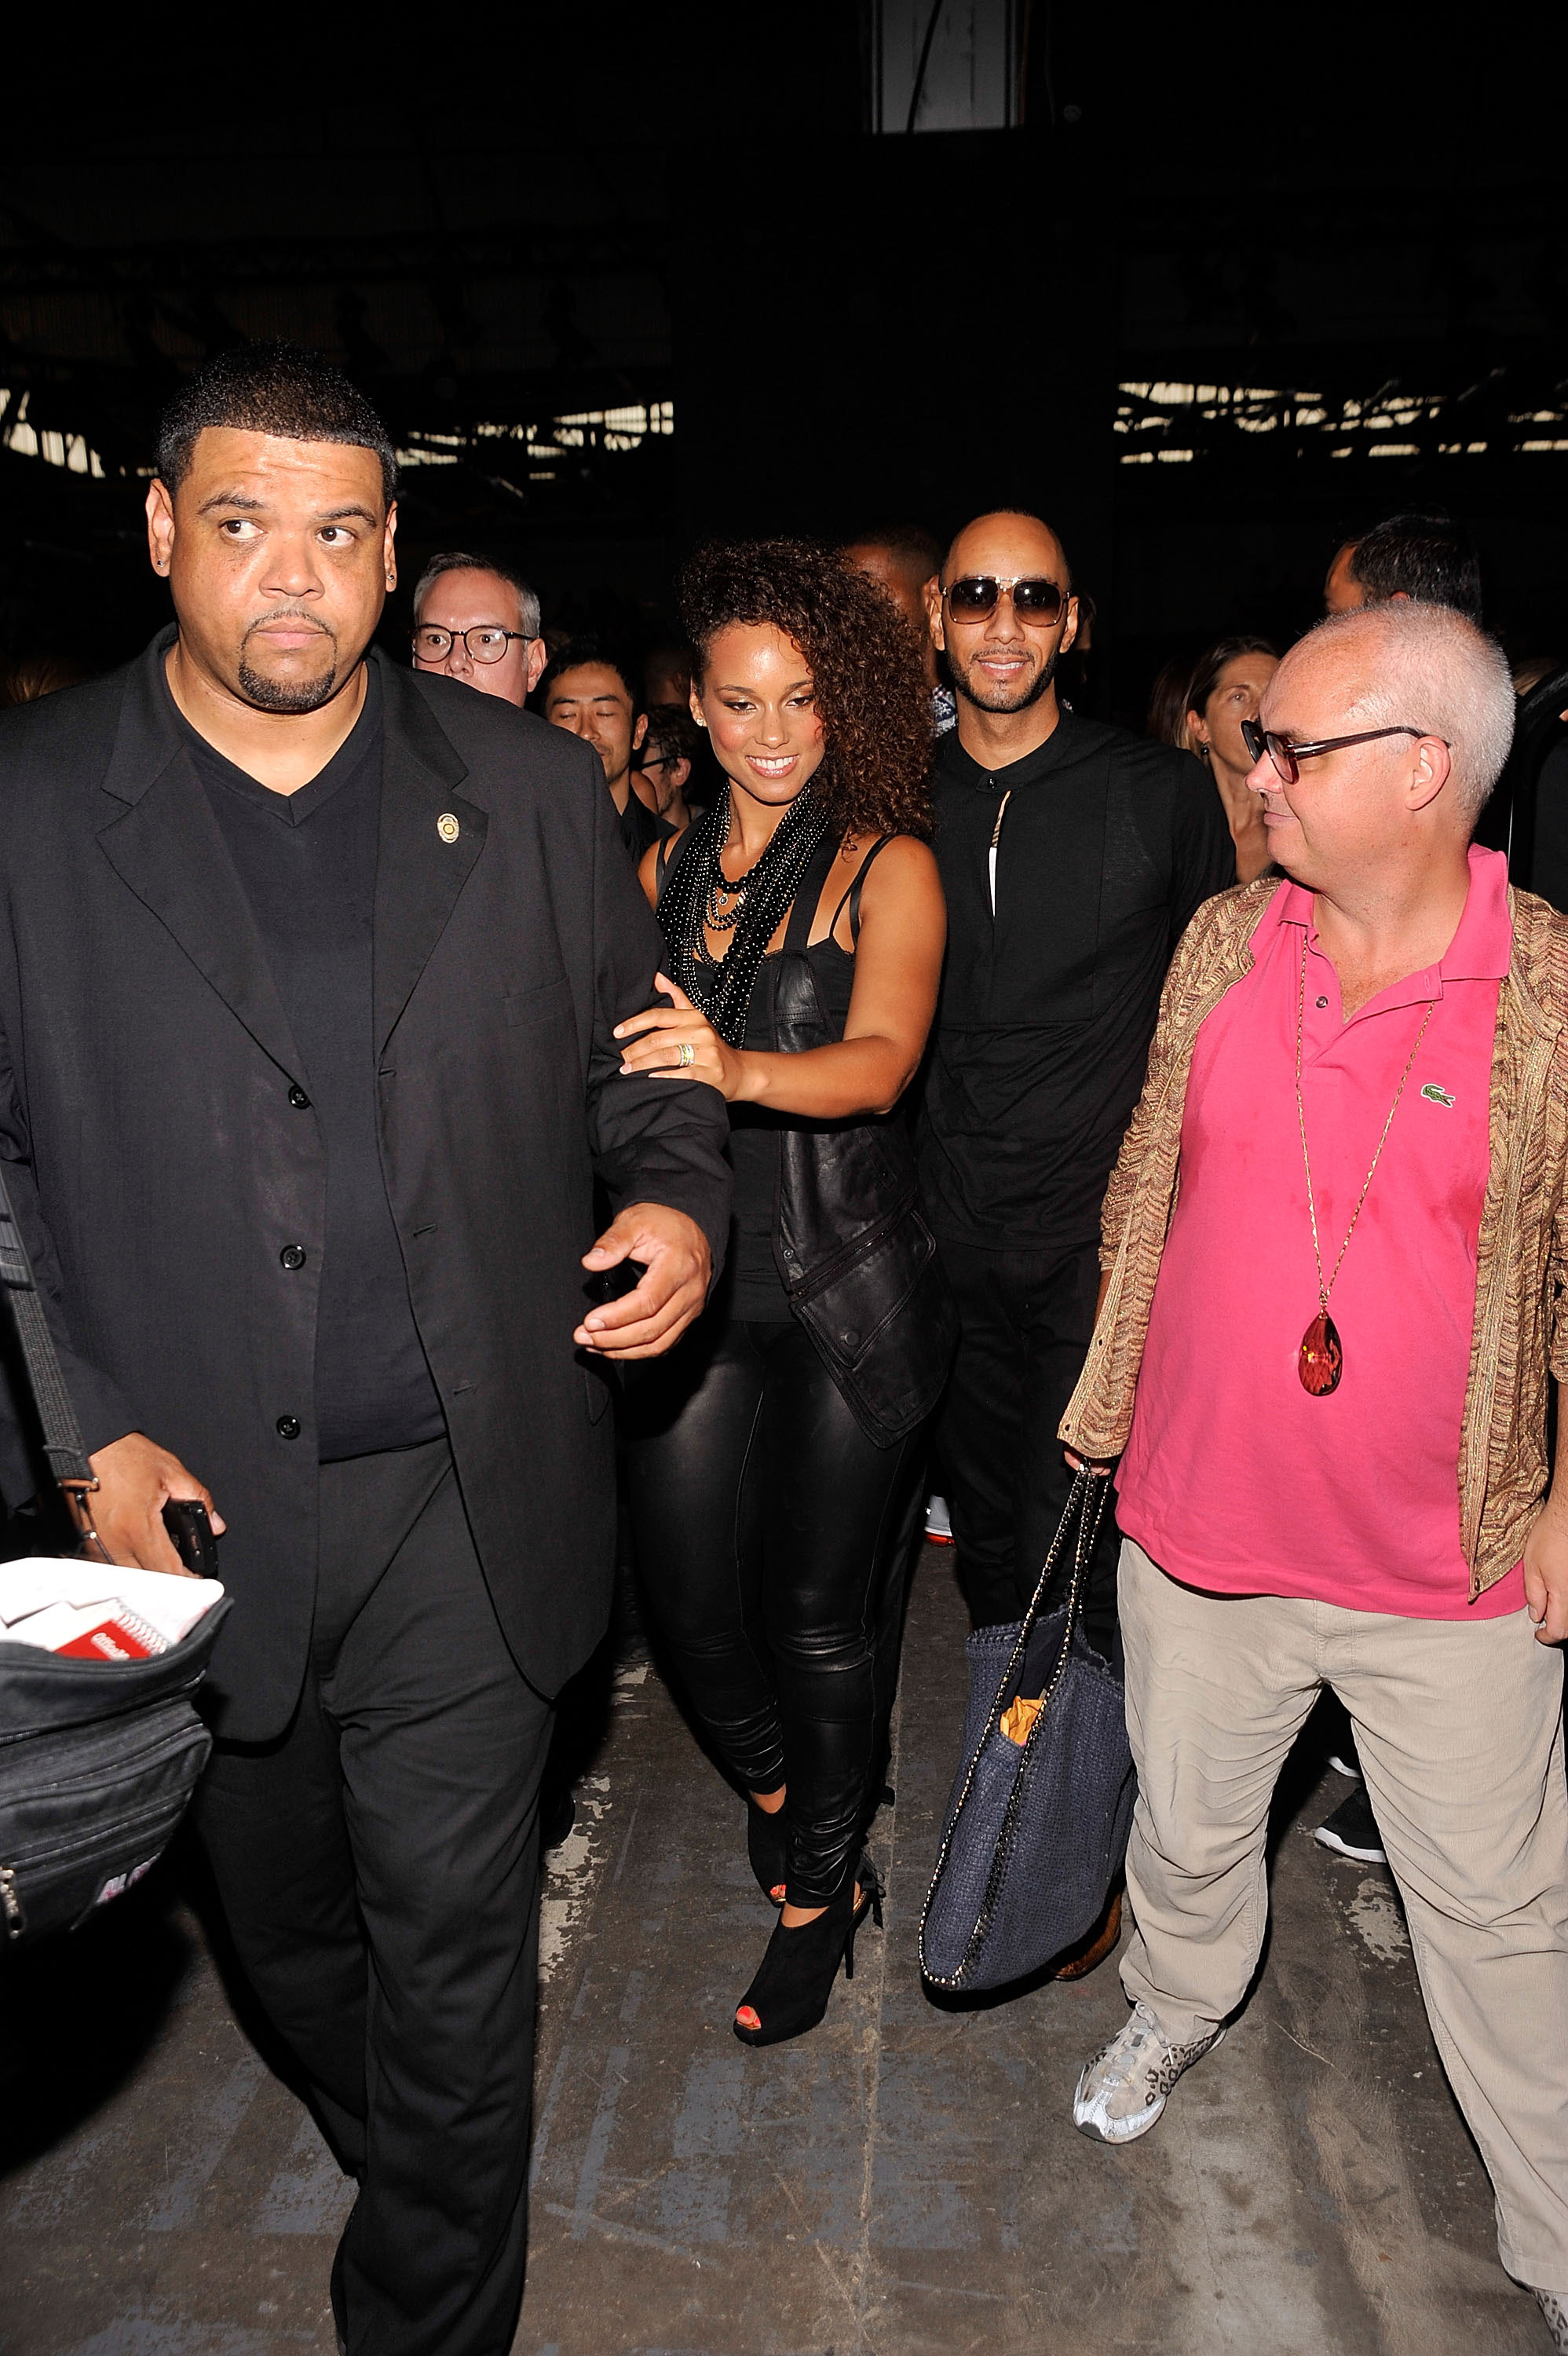 Alicia Keys and Swizz Beatz during Fashion Week.